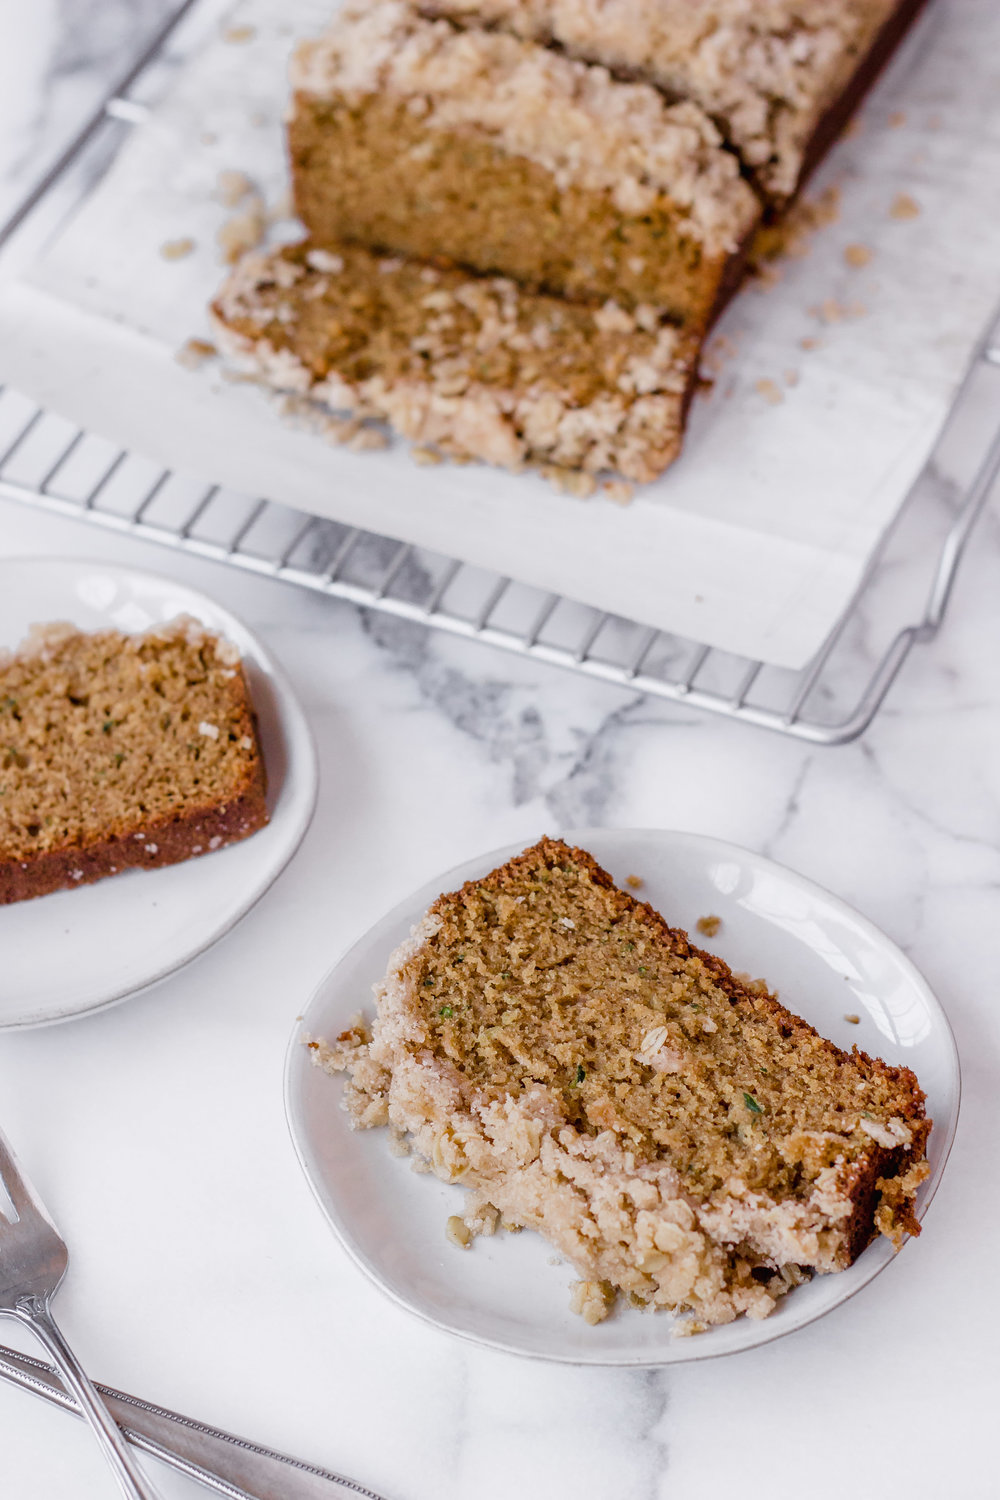 zucchini_bread_streusel_topping-8.jpg